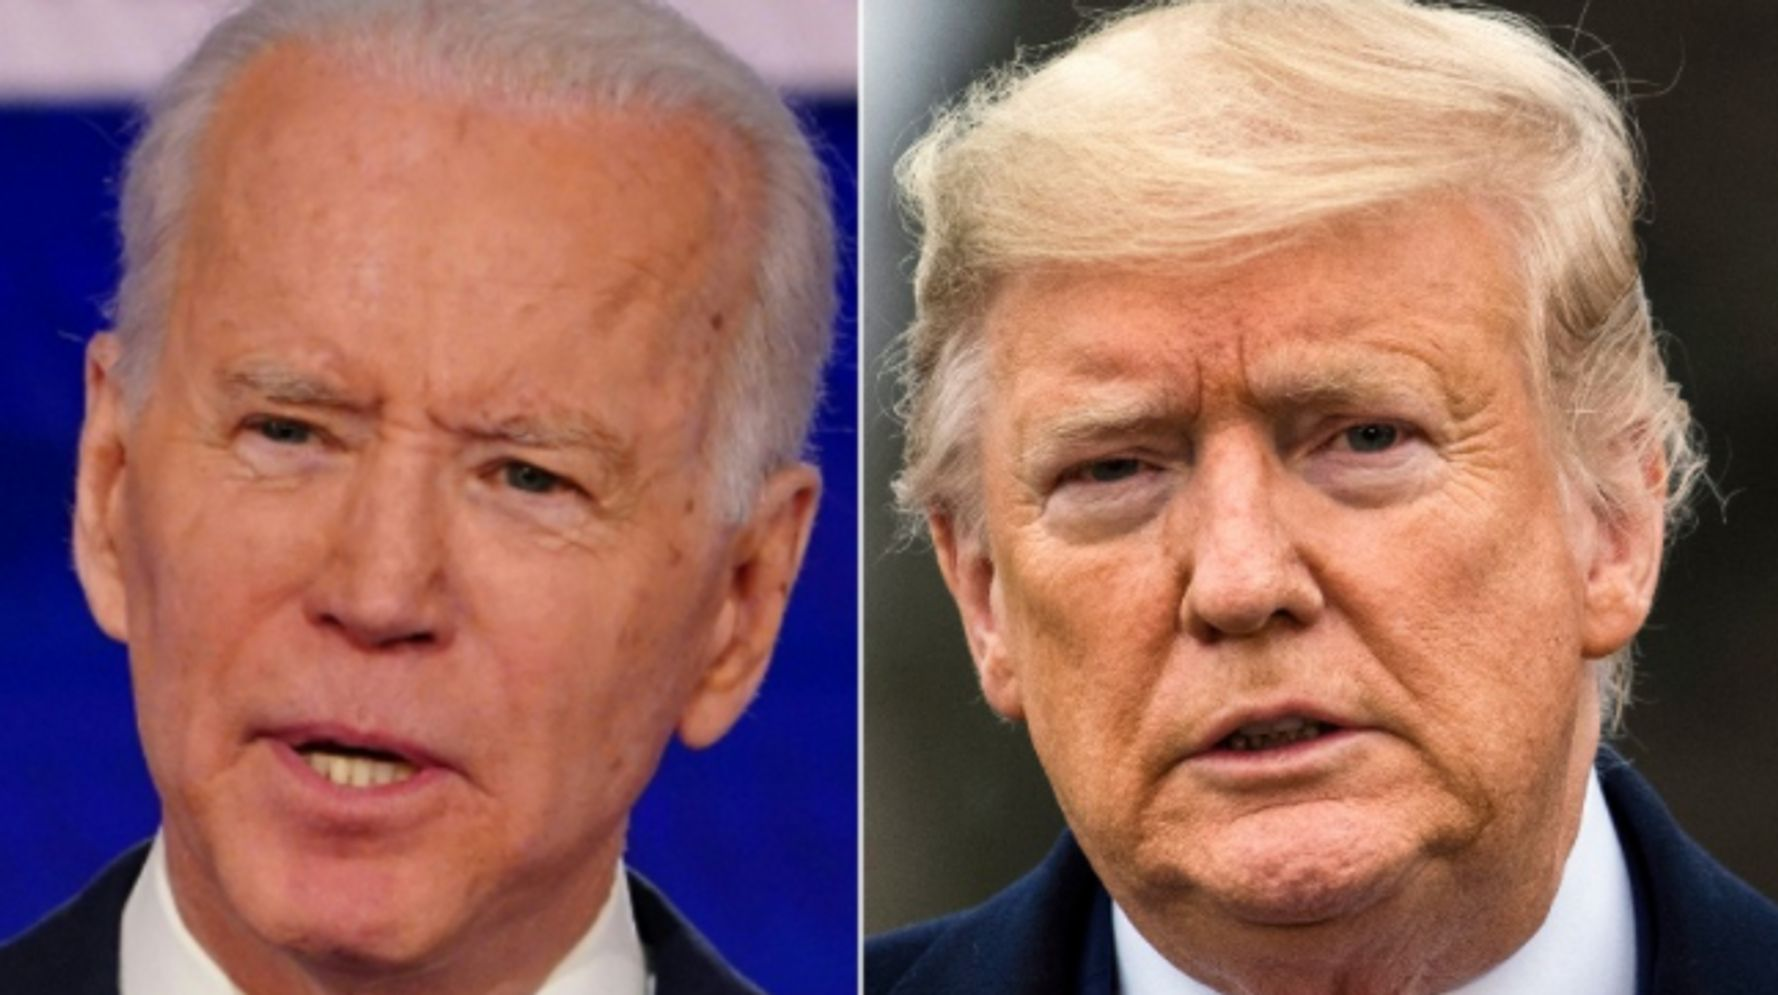 Biden Takes Trump's Favorite Line Of Attack, And Fires It Right Back At Him